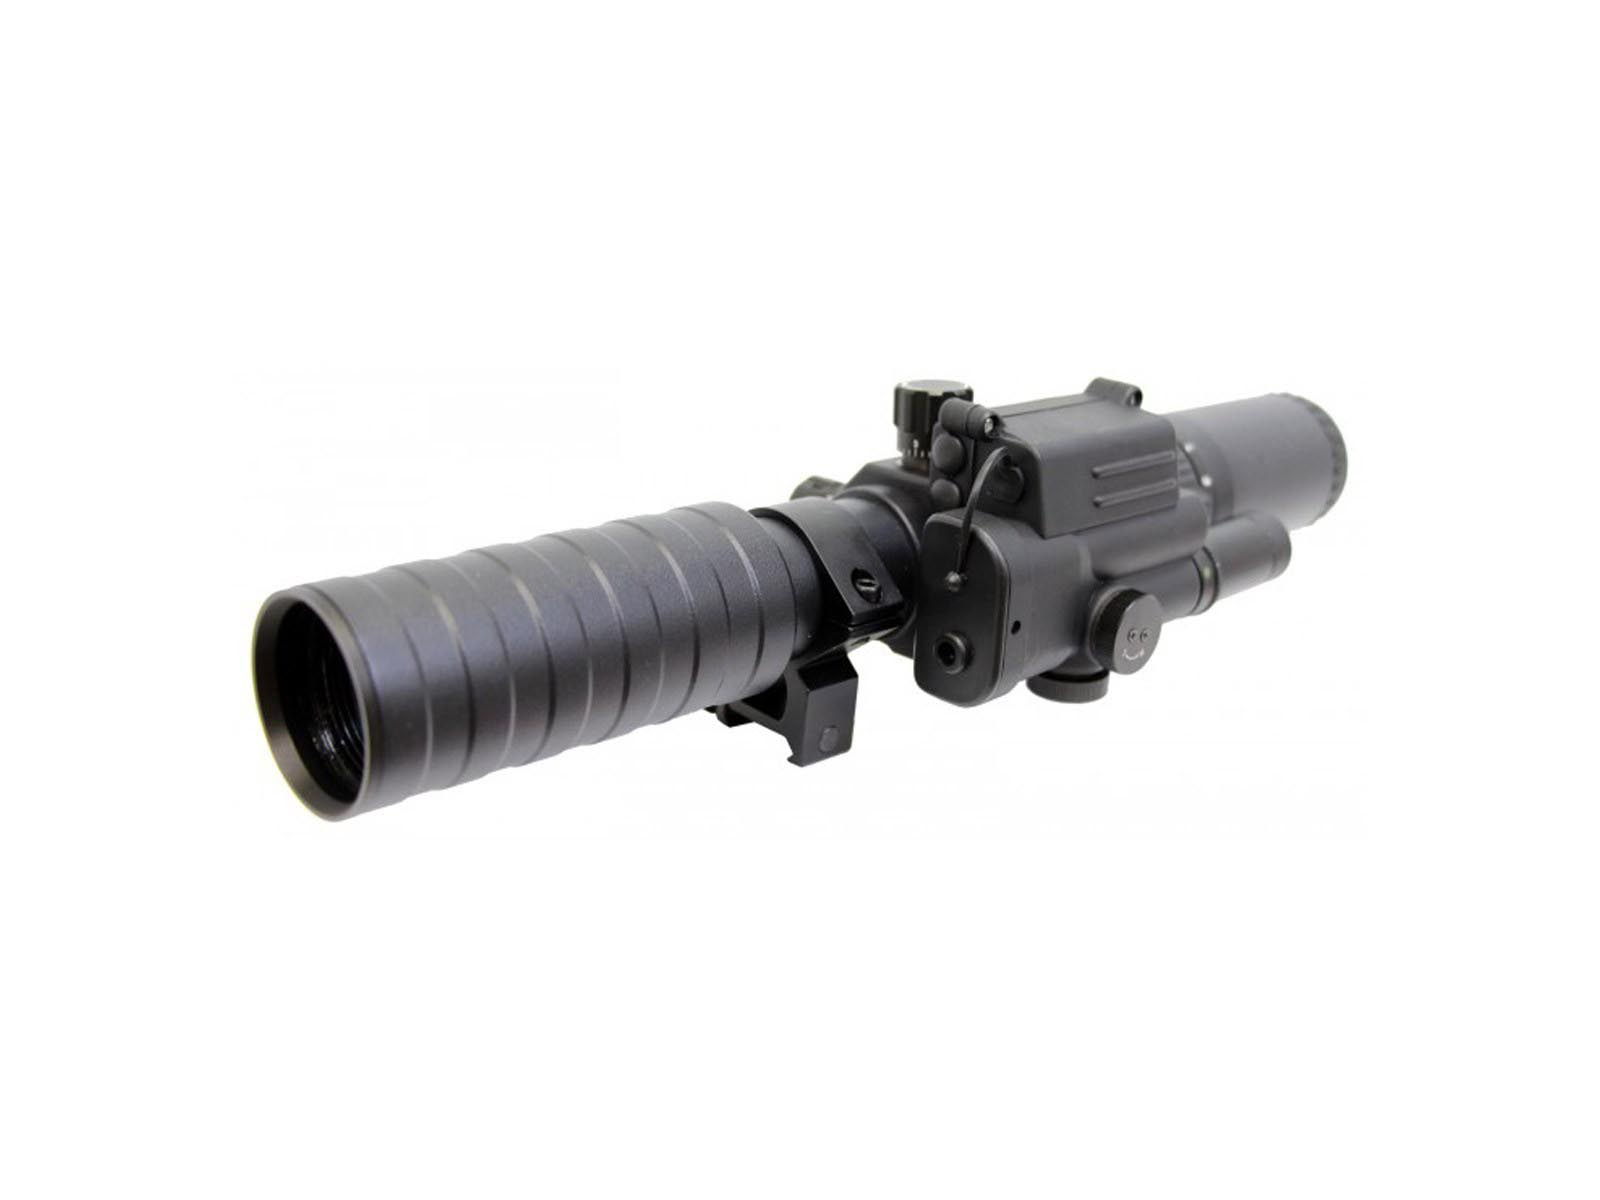 Spartan 3-9x32, Range Finder Reticle